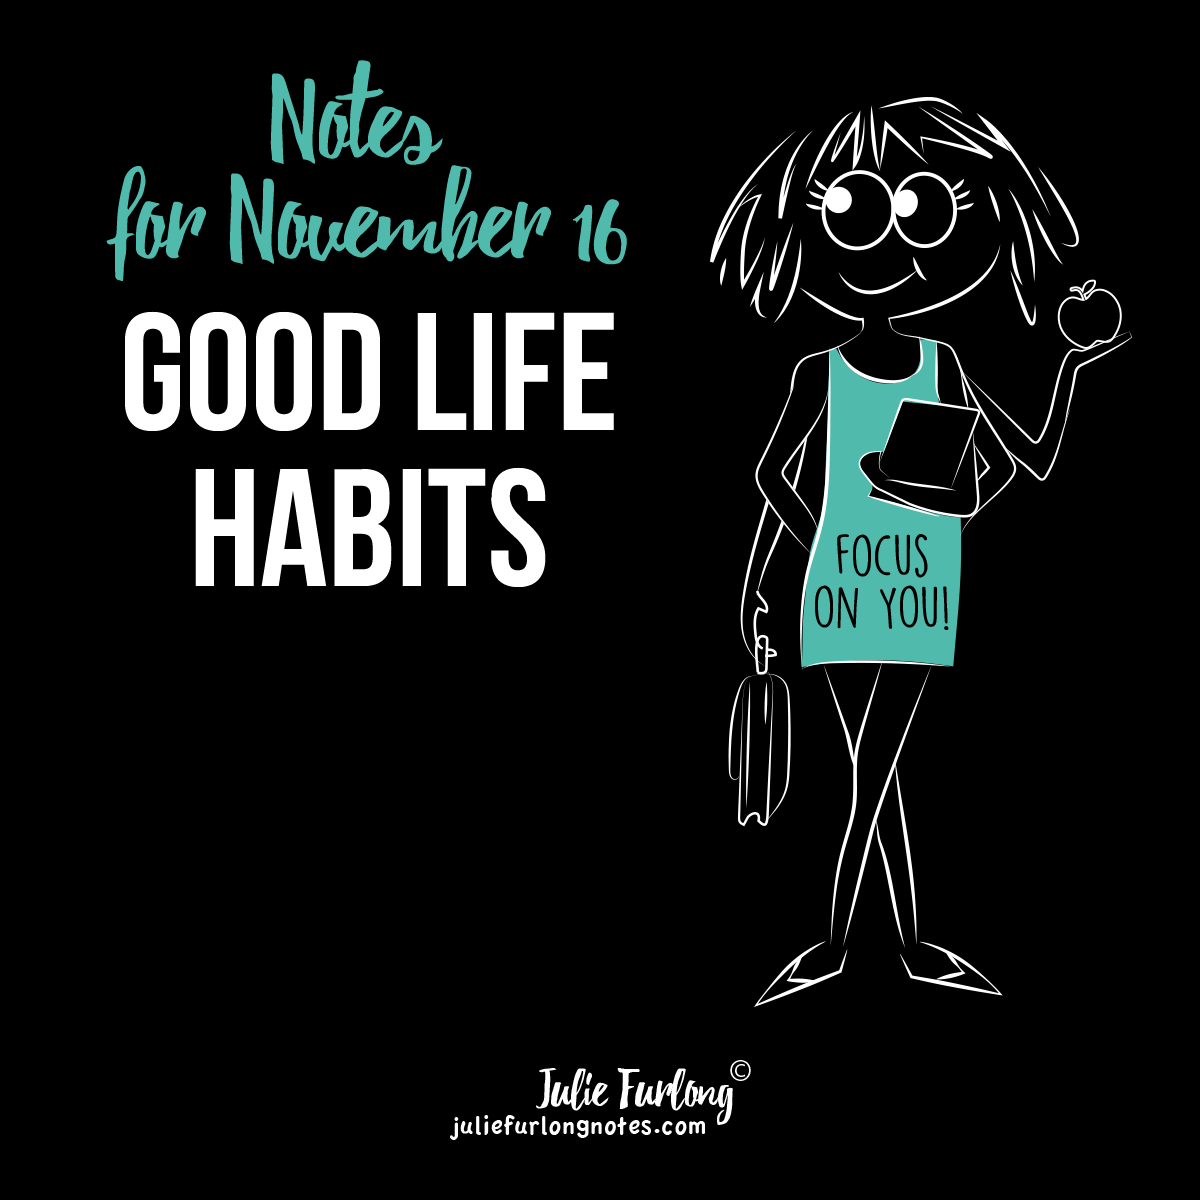 Julie-Furlong-Notes-good-life-habit